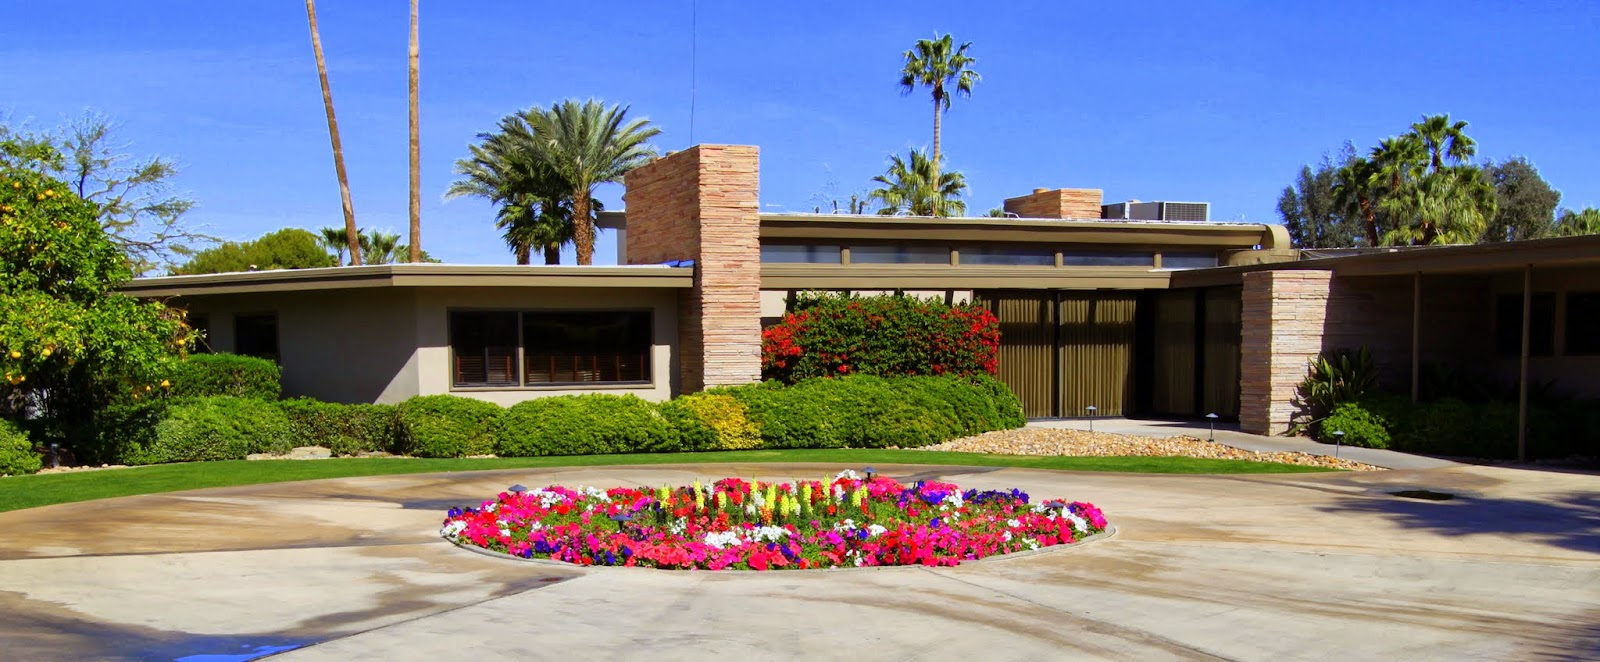 Walking Tour, Vista Las Palmas, Palm Springs, Modernism Week 2014, Sinatra Twin Palms